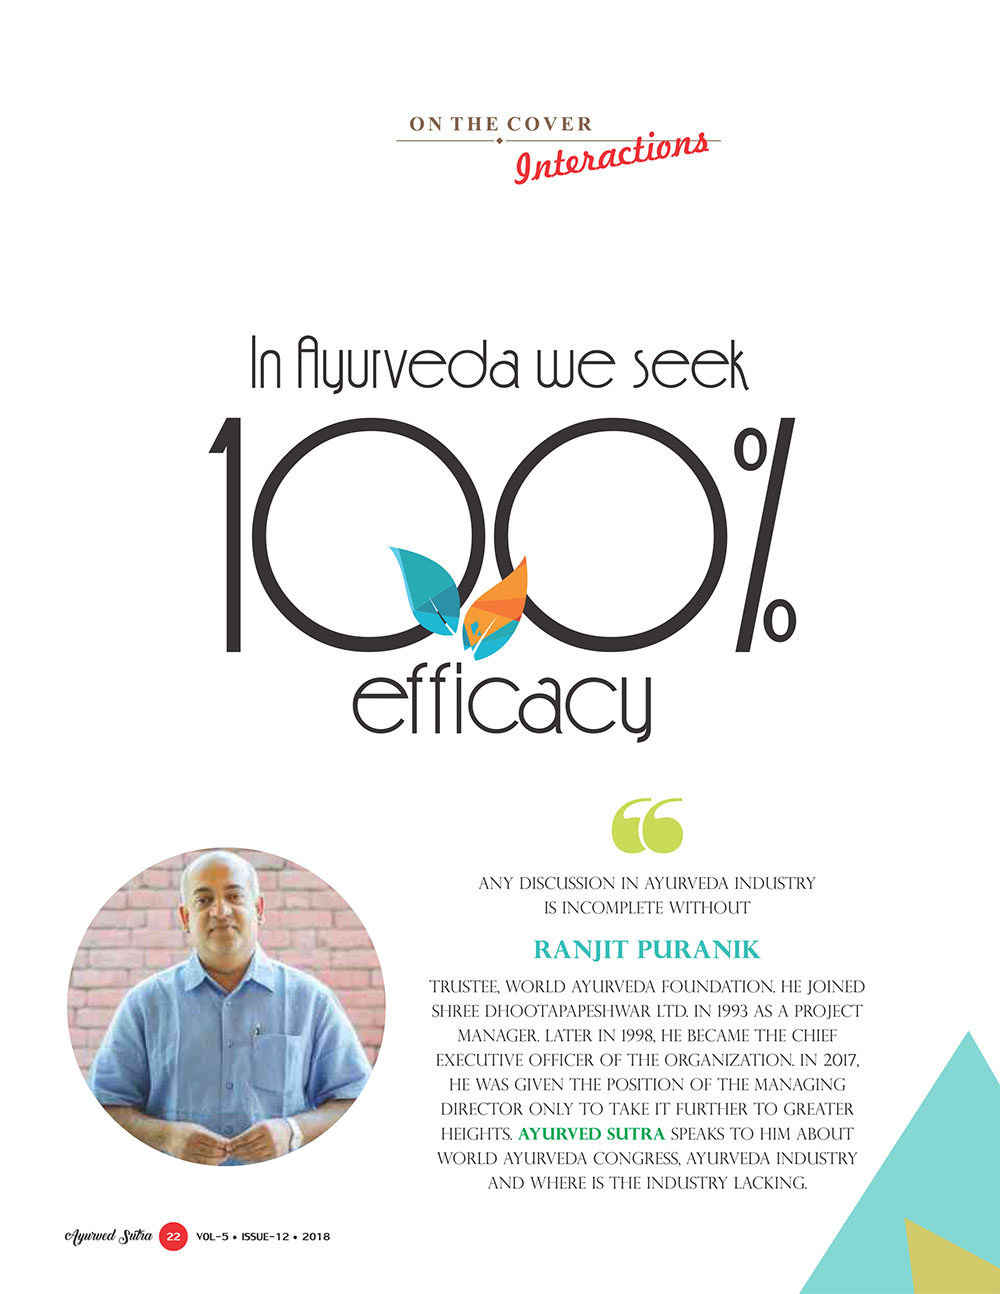 Ayurvedsutra Vol 05 issue 12 24 - In Ayurveda we seek  100 per cent efficacy